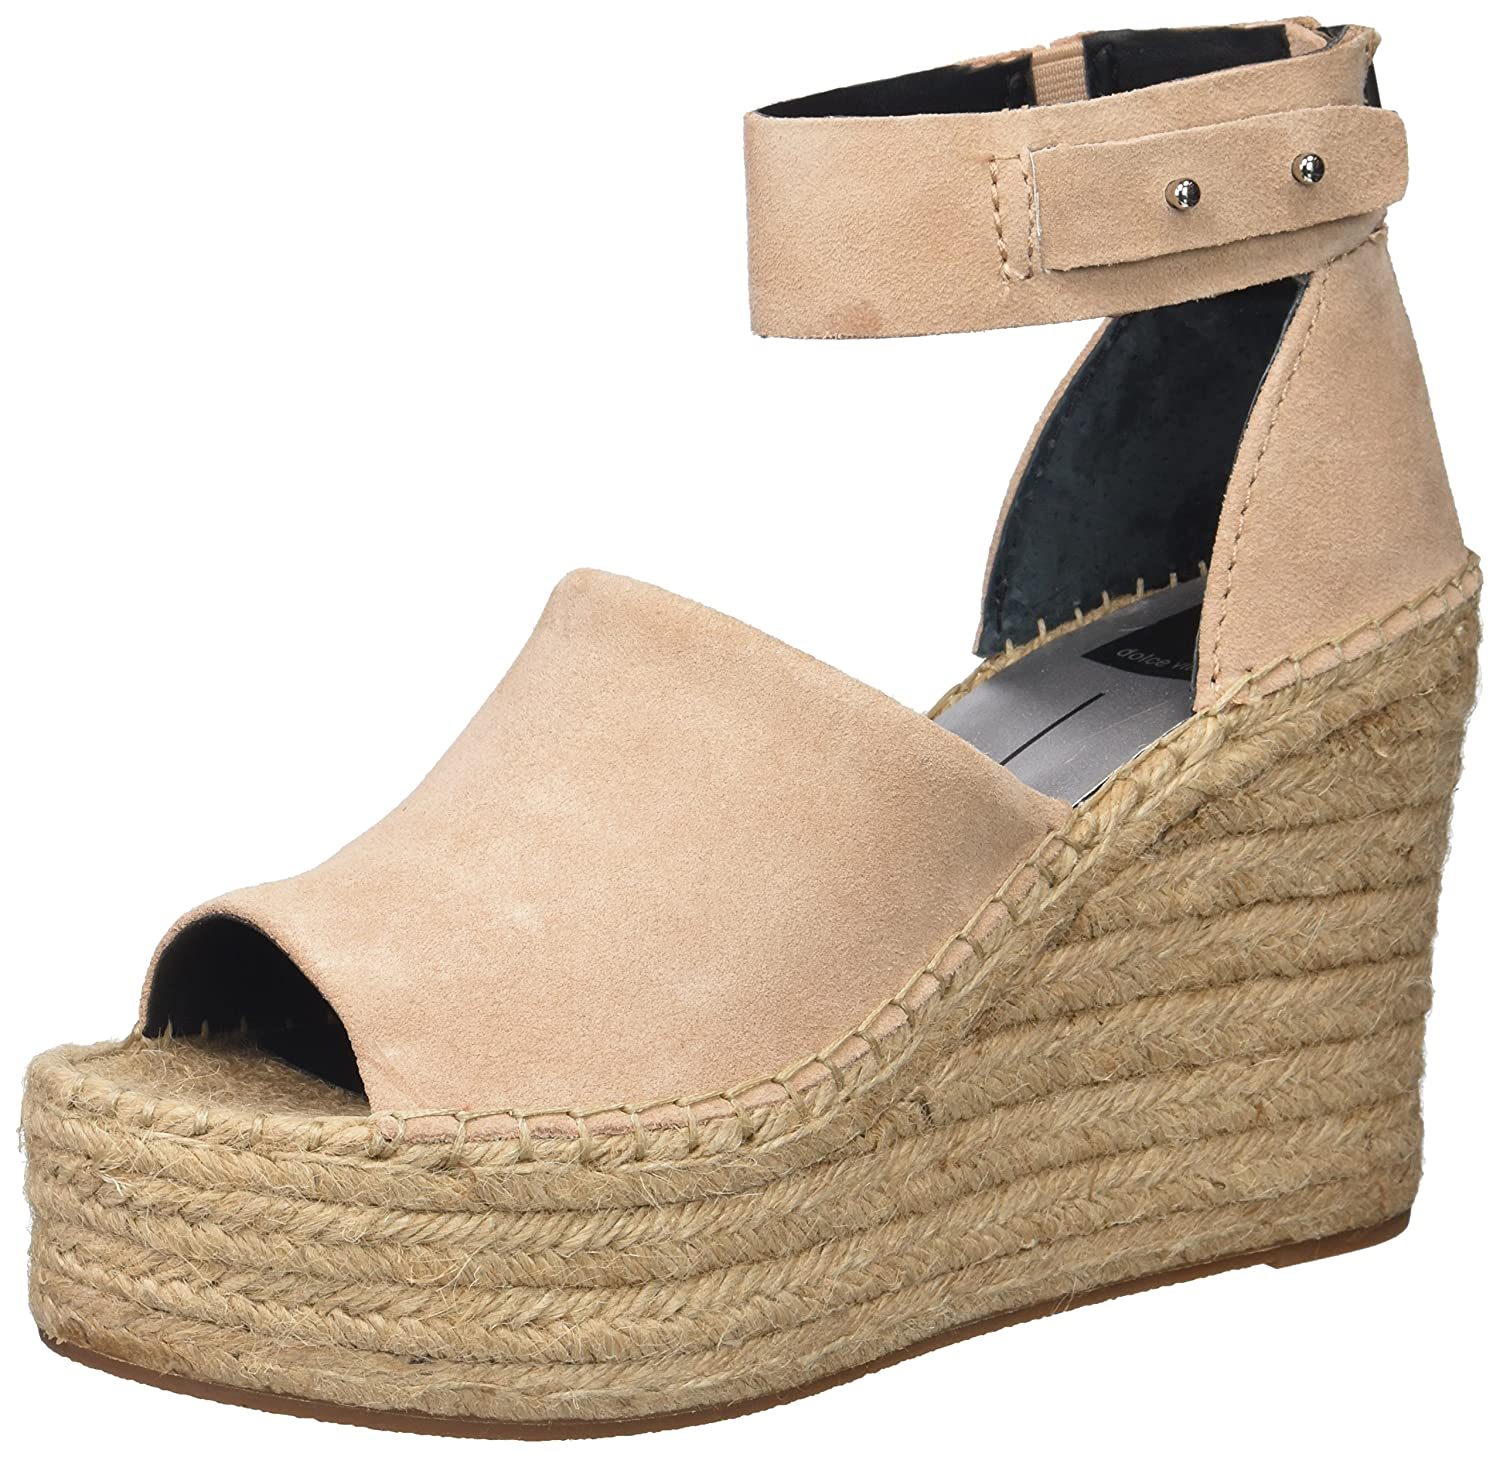 77fbd0fa981 Dolce vita womens straw wedge sandal shoes jpg 1500x1457 Dolce vita wedge